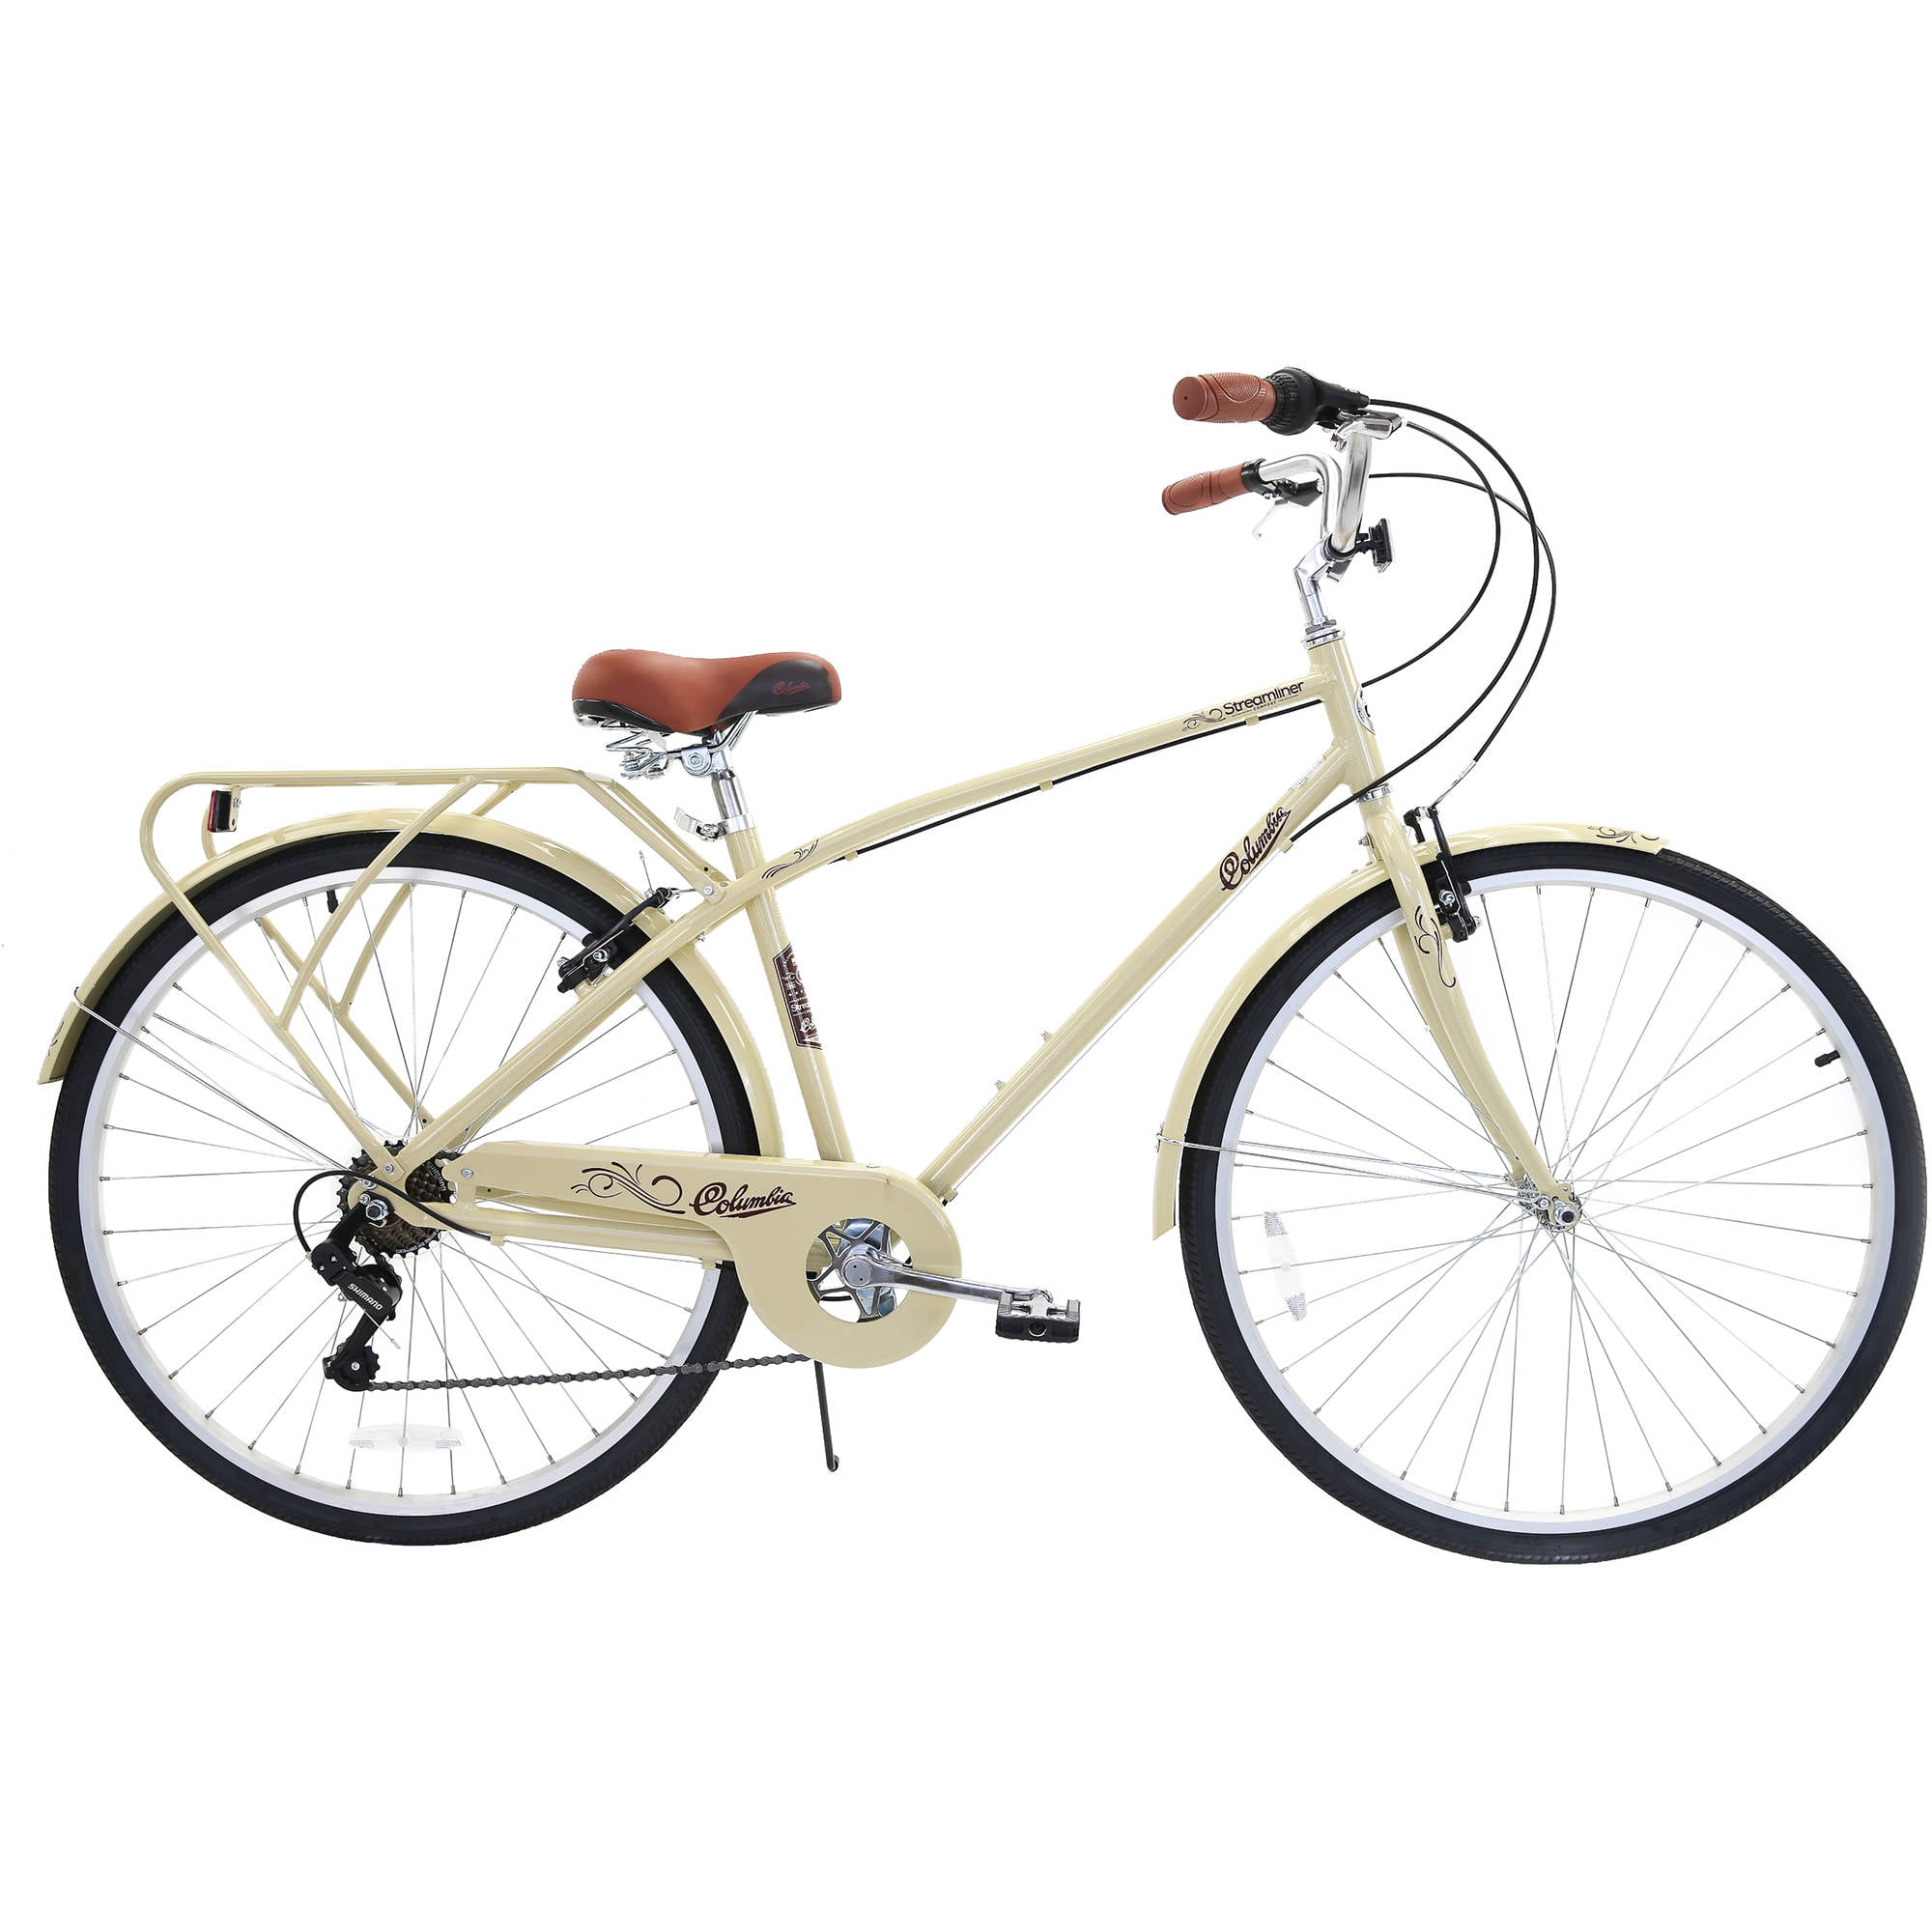 700C Columbia Streamliner7 Men's Bike by